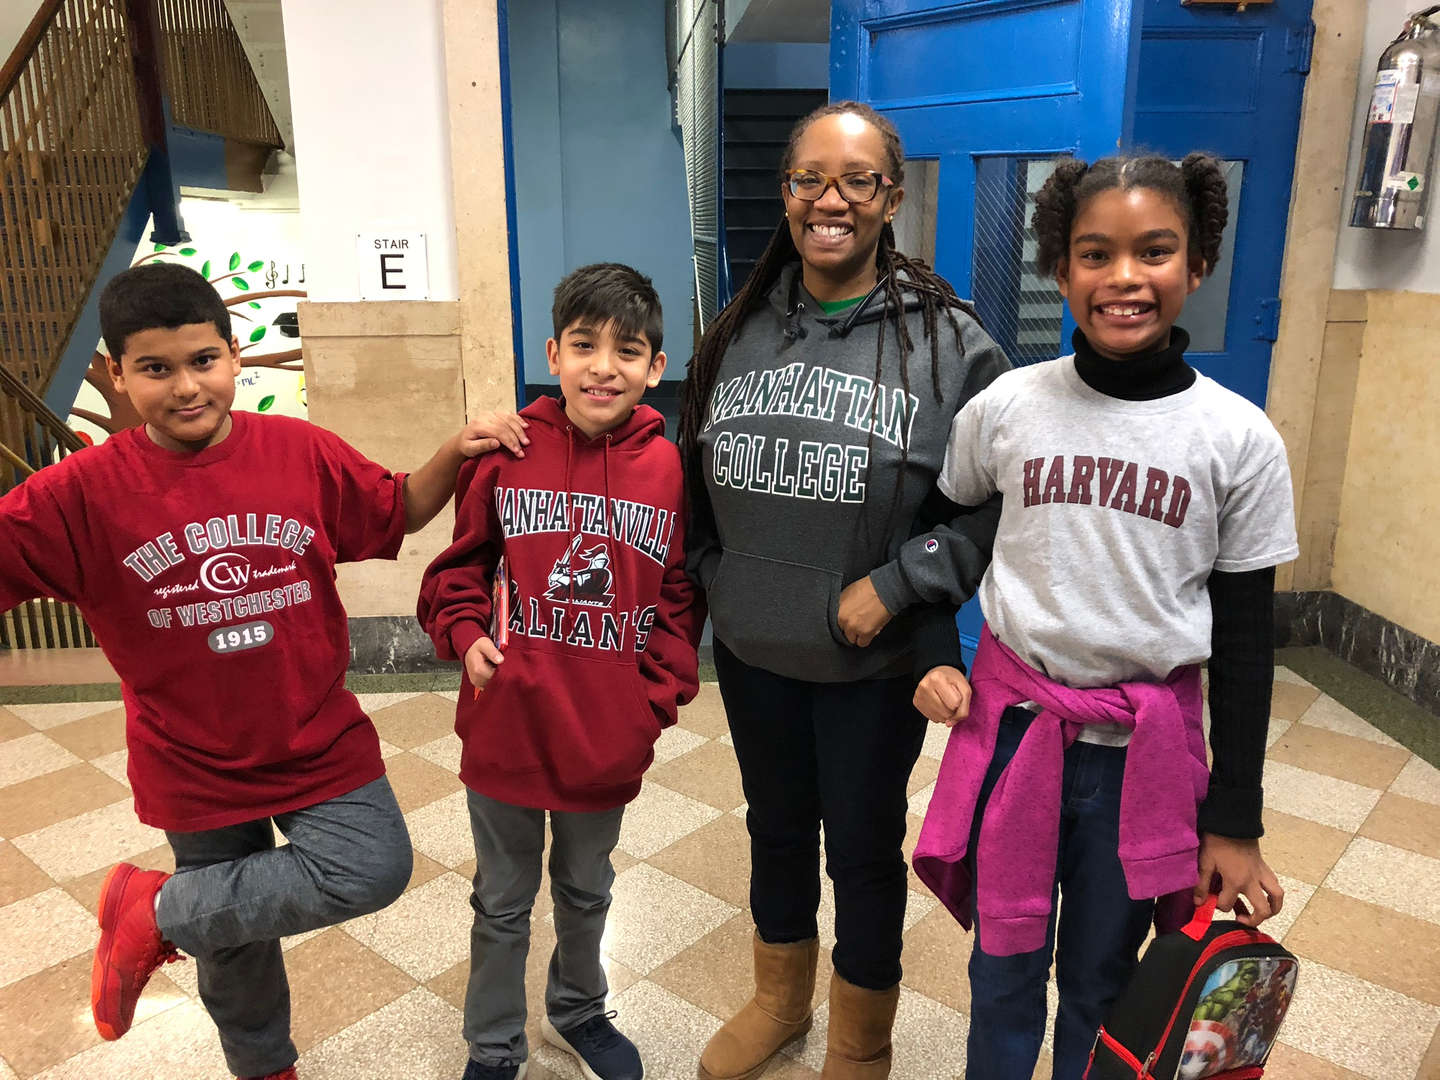 A teacher and three students in college gear.